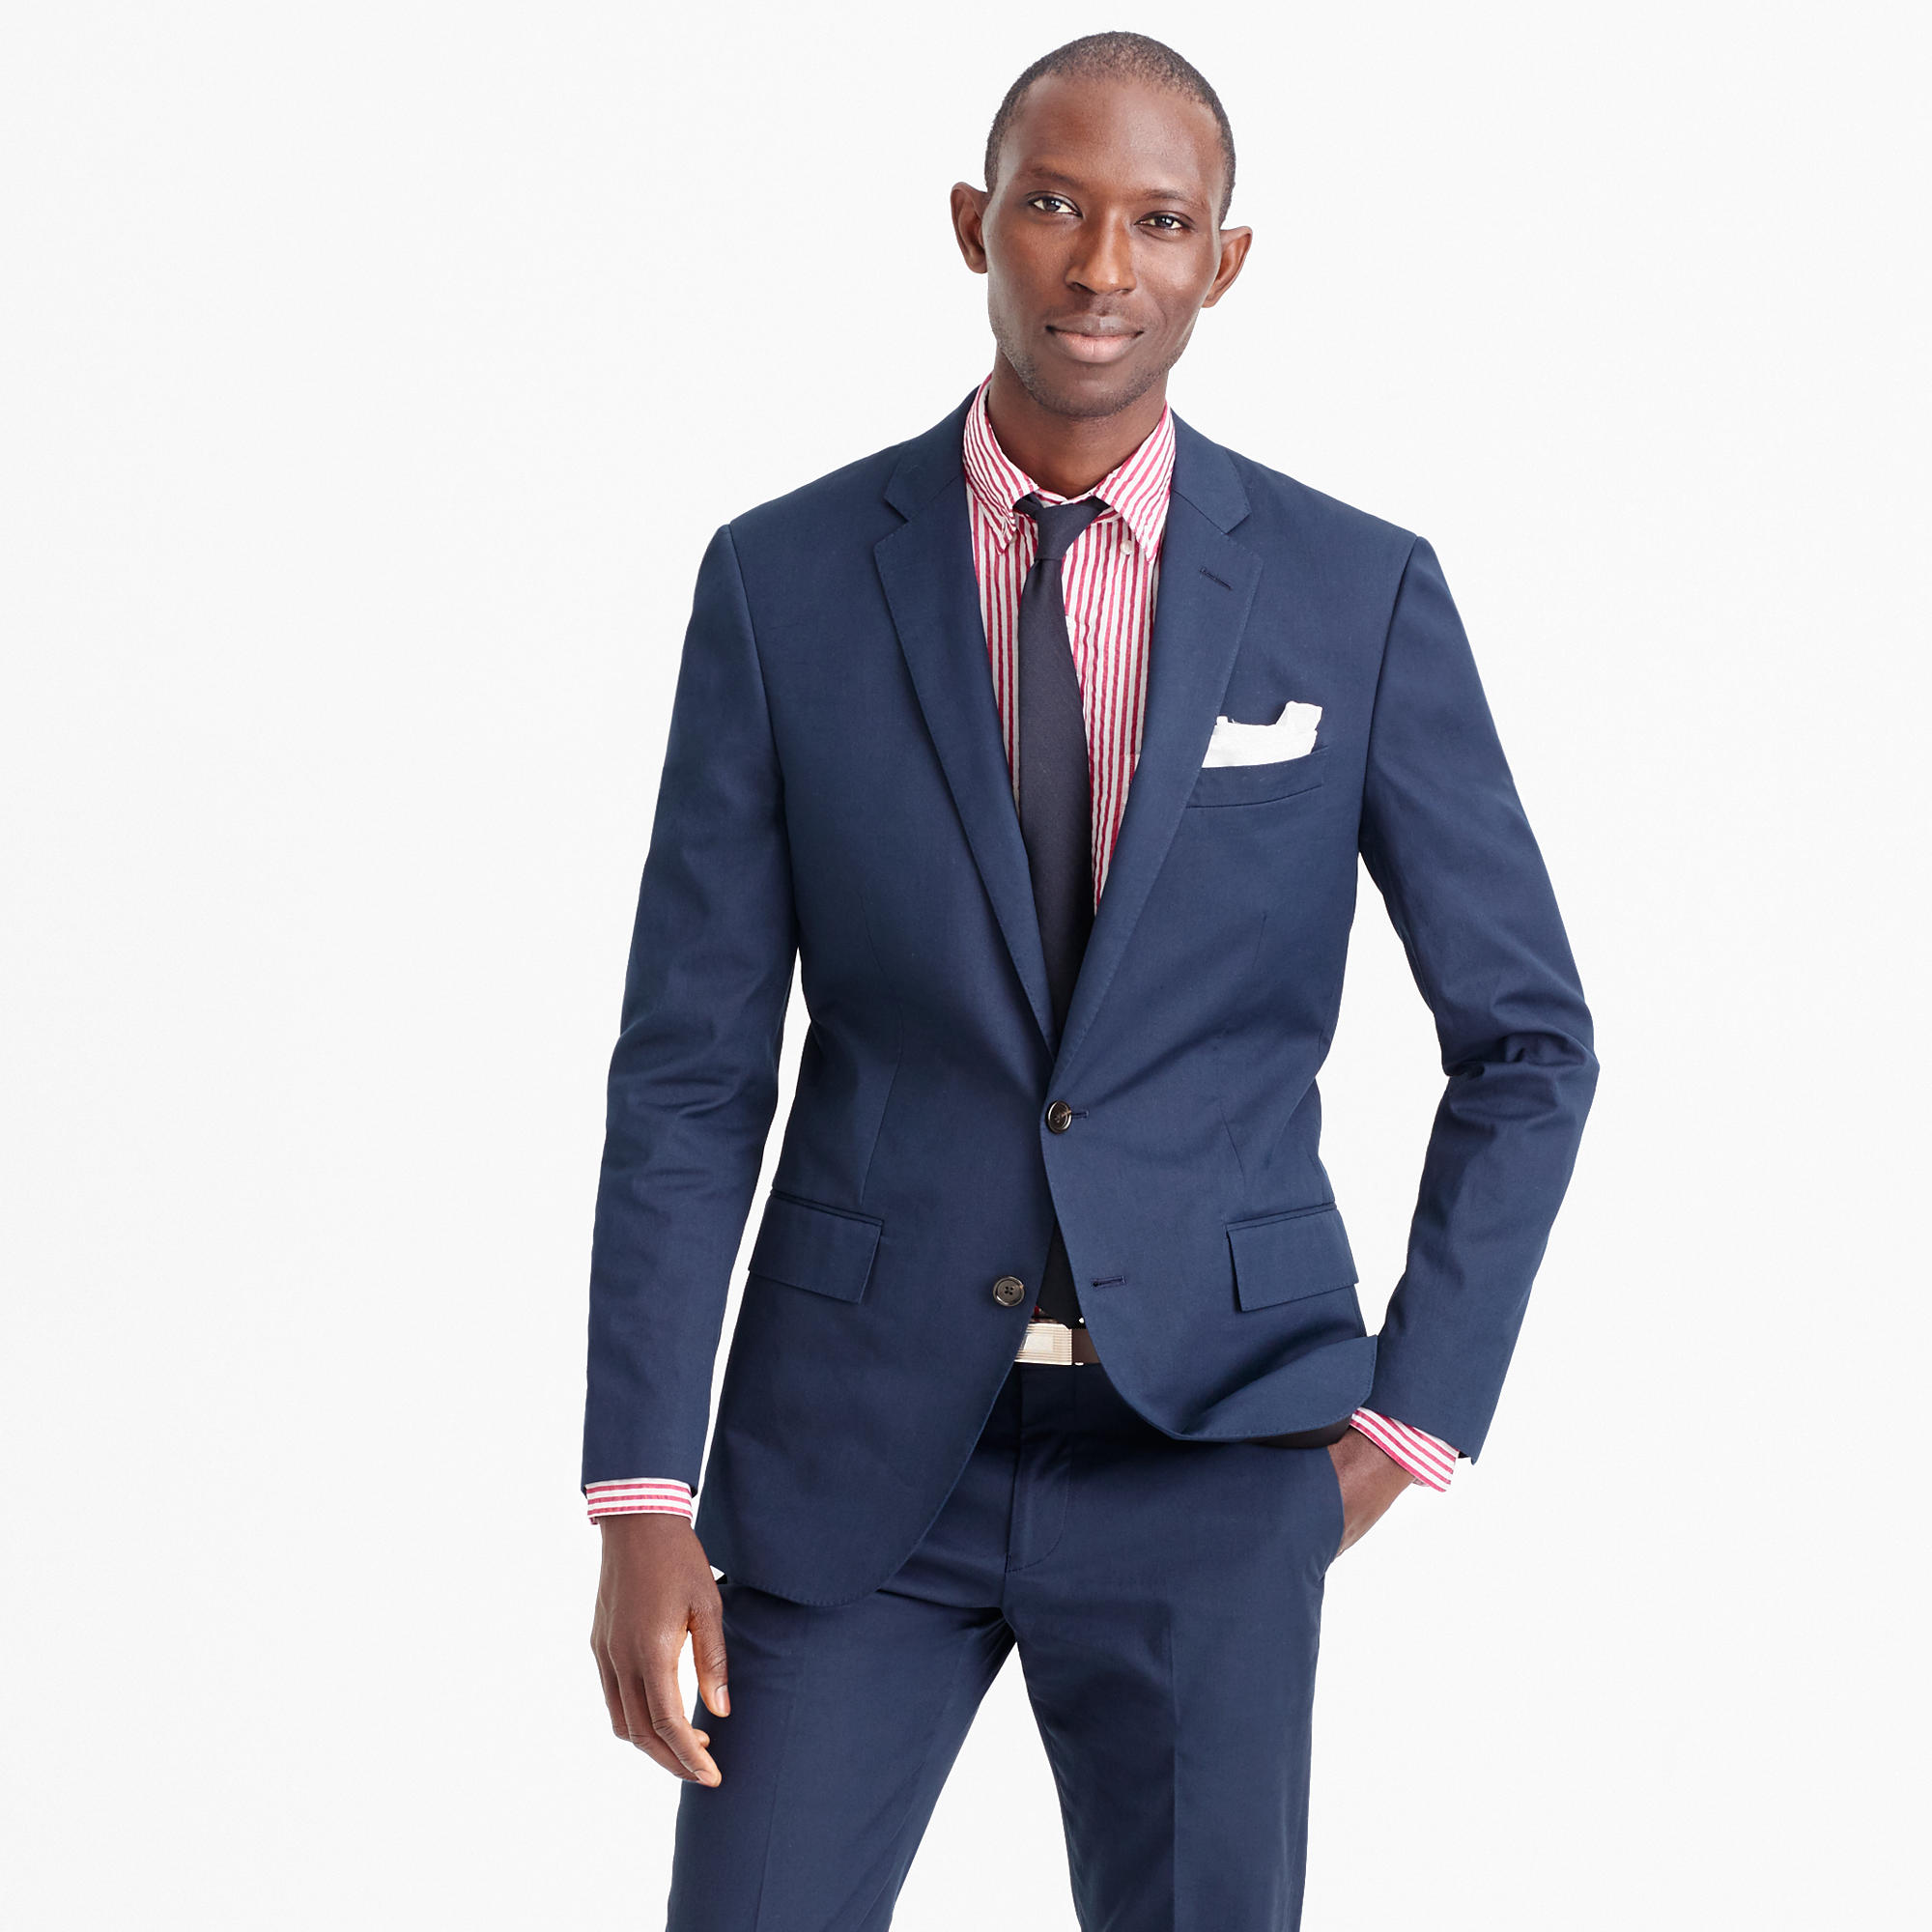 Ludlow Traveler Suit Jacket In Italian Wool : Men's Blazers | J.Crew